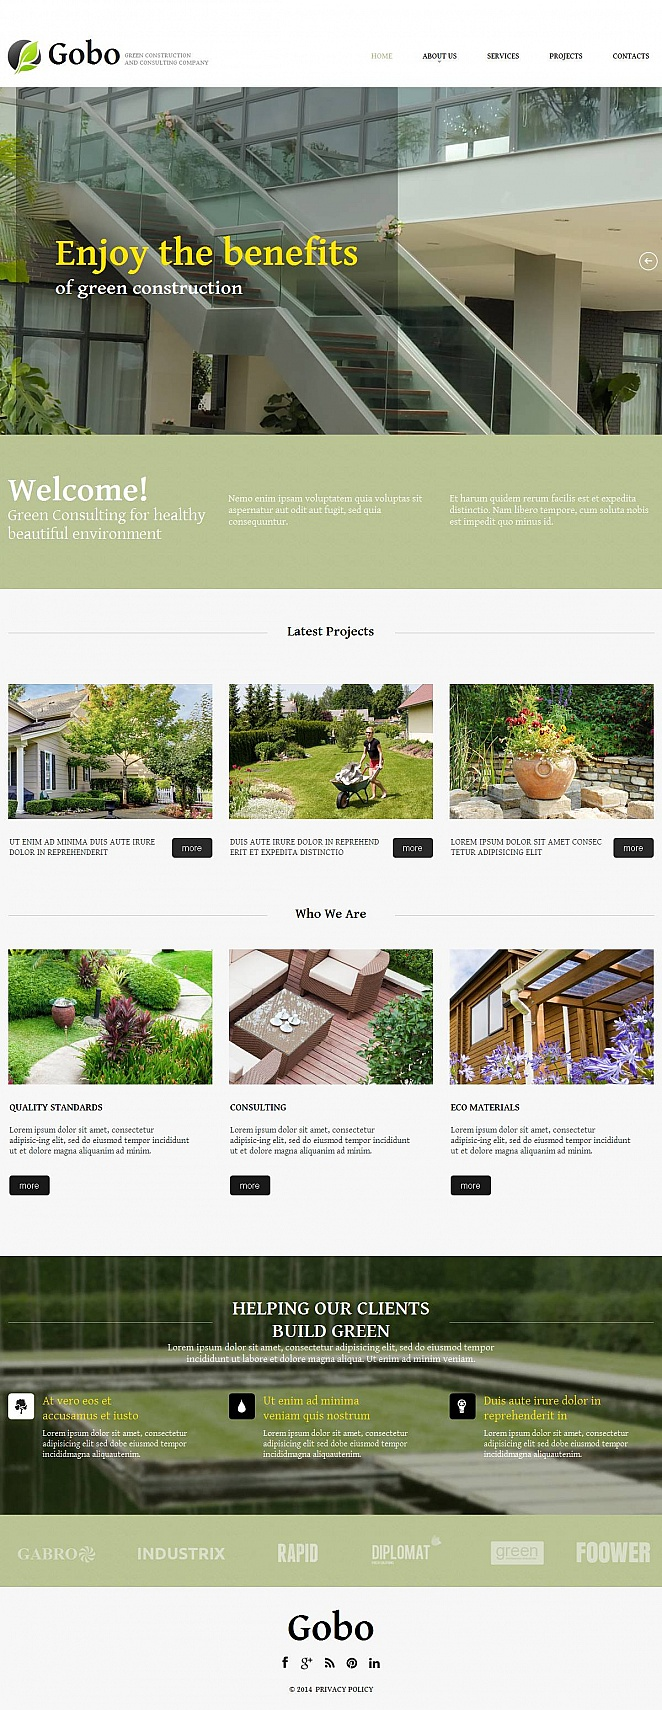 Green Construction Website Template with Minimalist Design - image